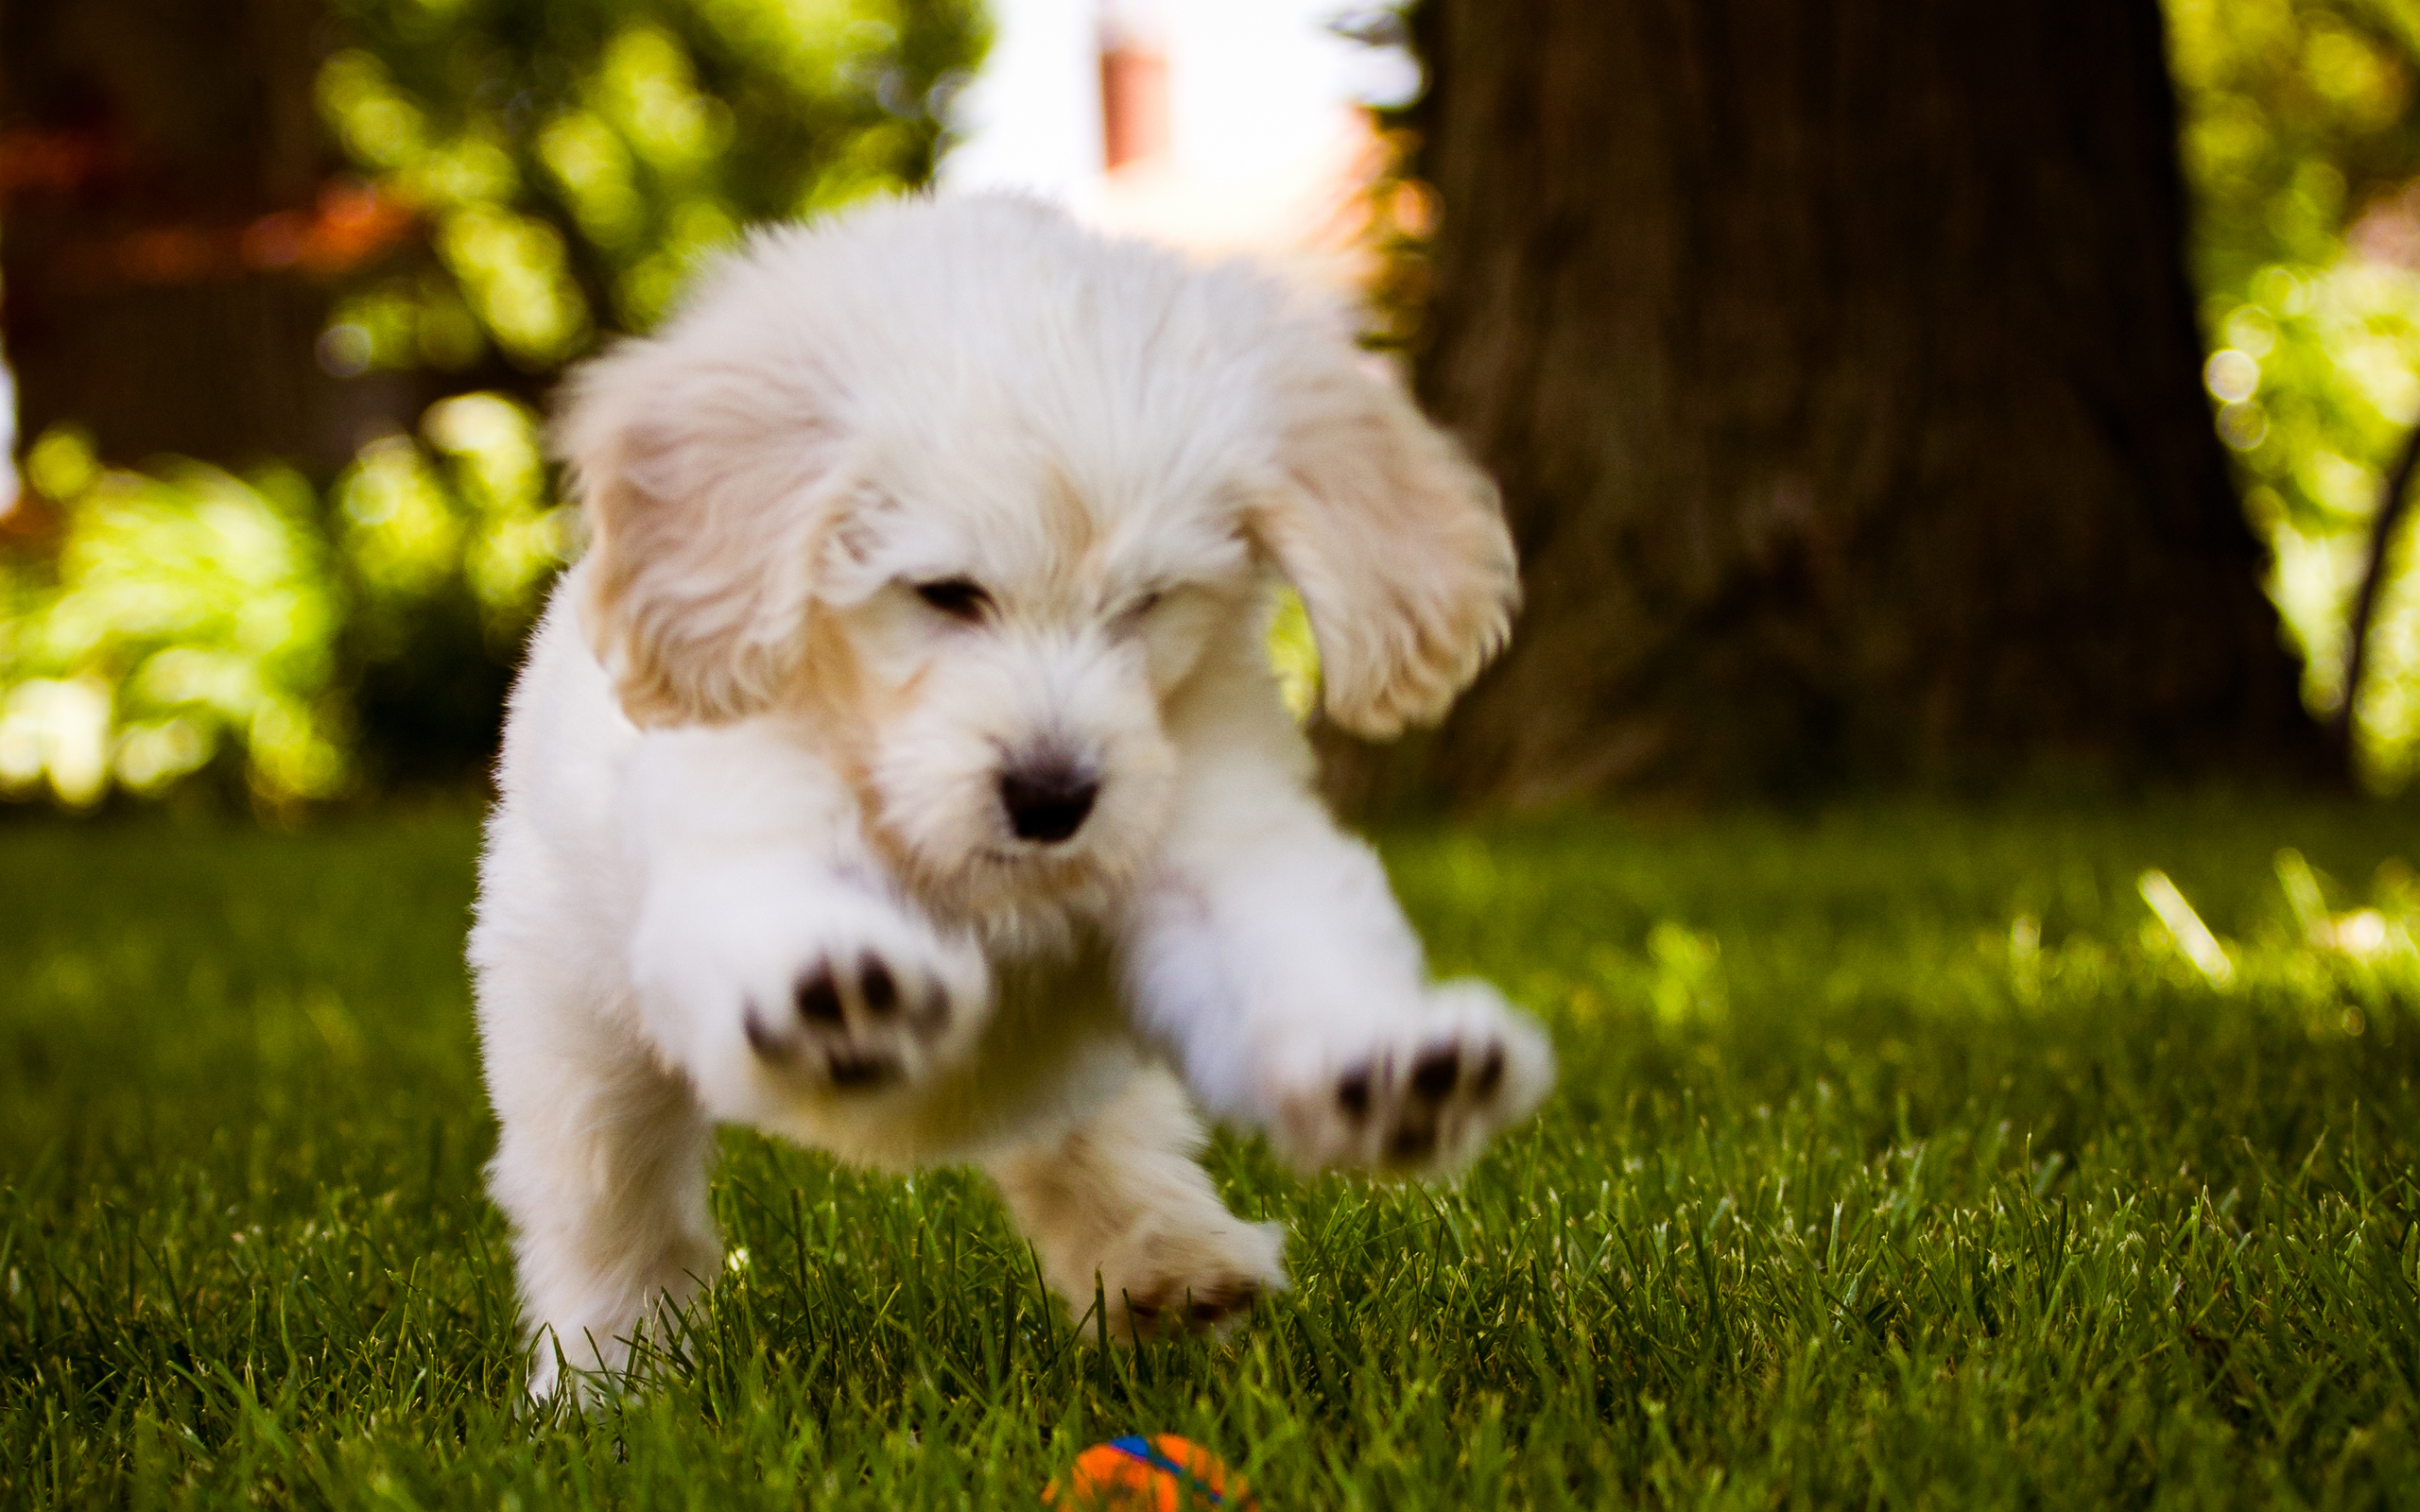 Hd wallpaper dog - Little Dog Playing In The Wood Free Hd Wallpaper Desktop Backgrounds